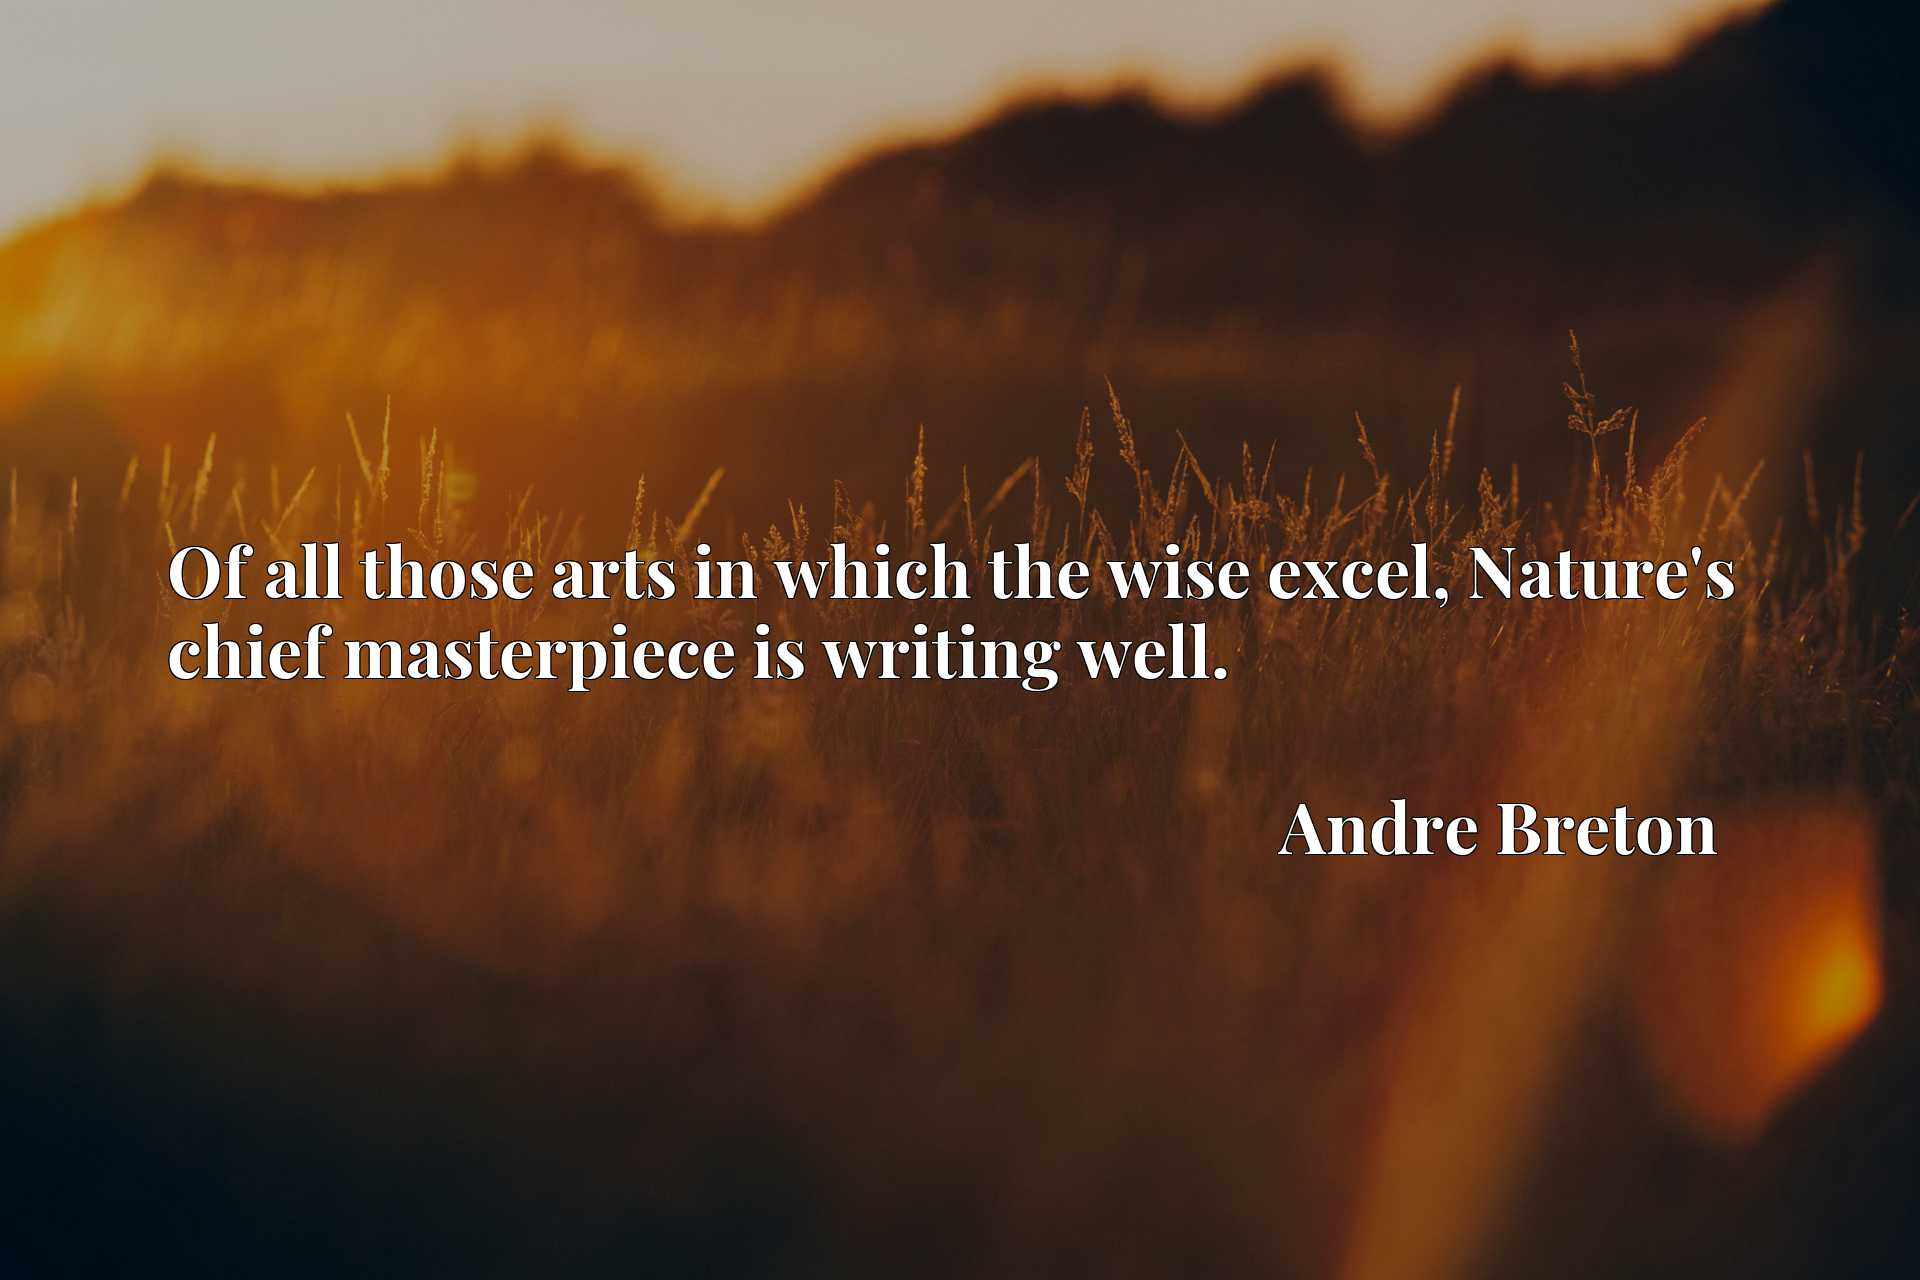 Quote Picture :Of all those arts in which the wise excel, Nature's chief masterpiece is writing well.